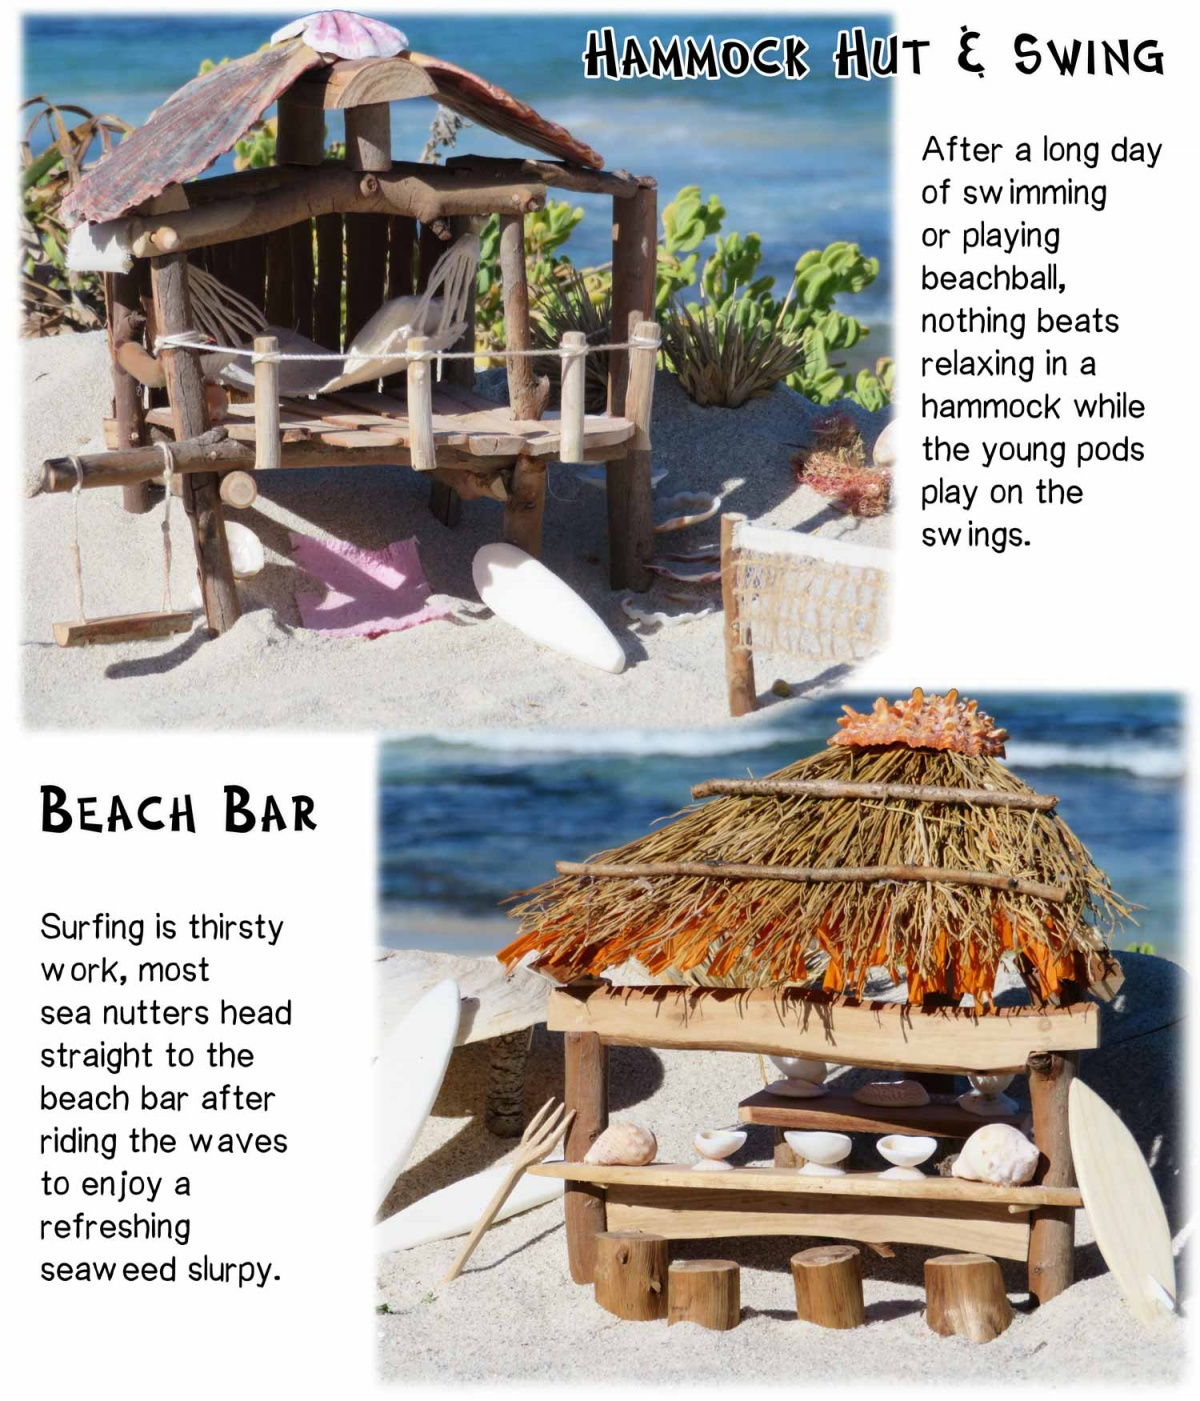 Nutter Beach Bar